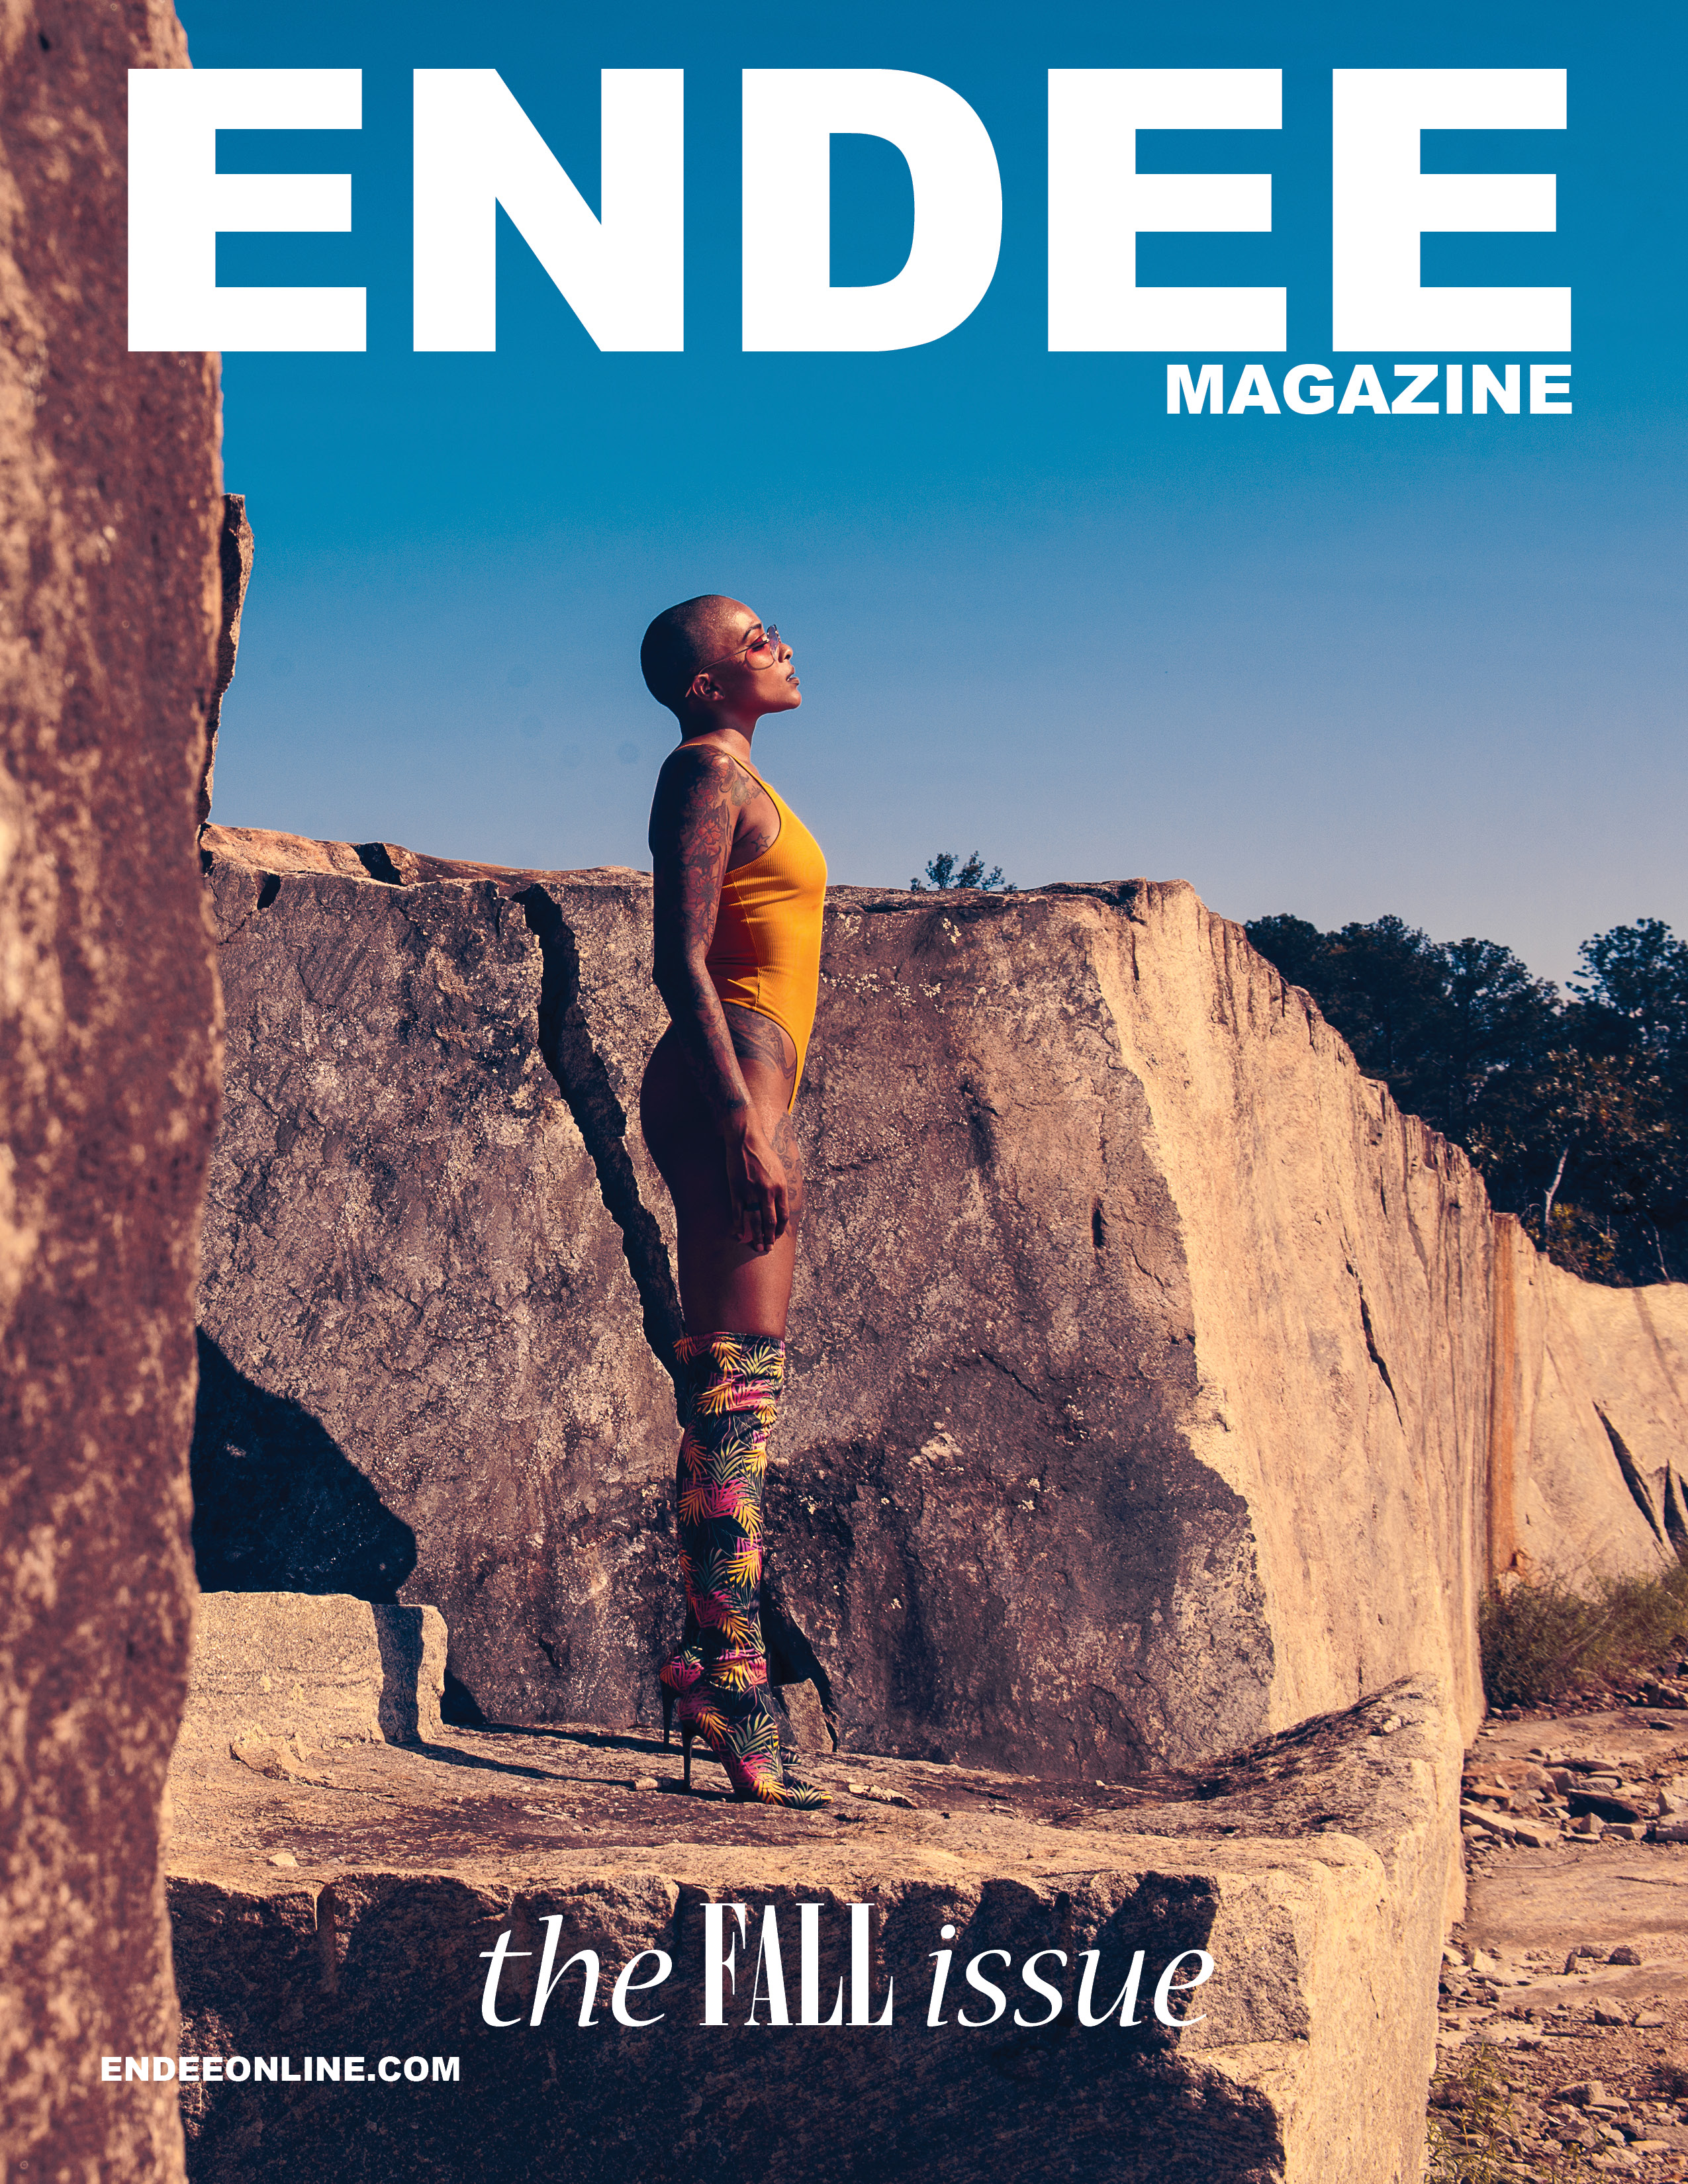 ENDEE Magazine July 2018